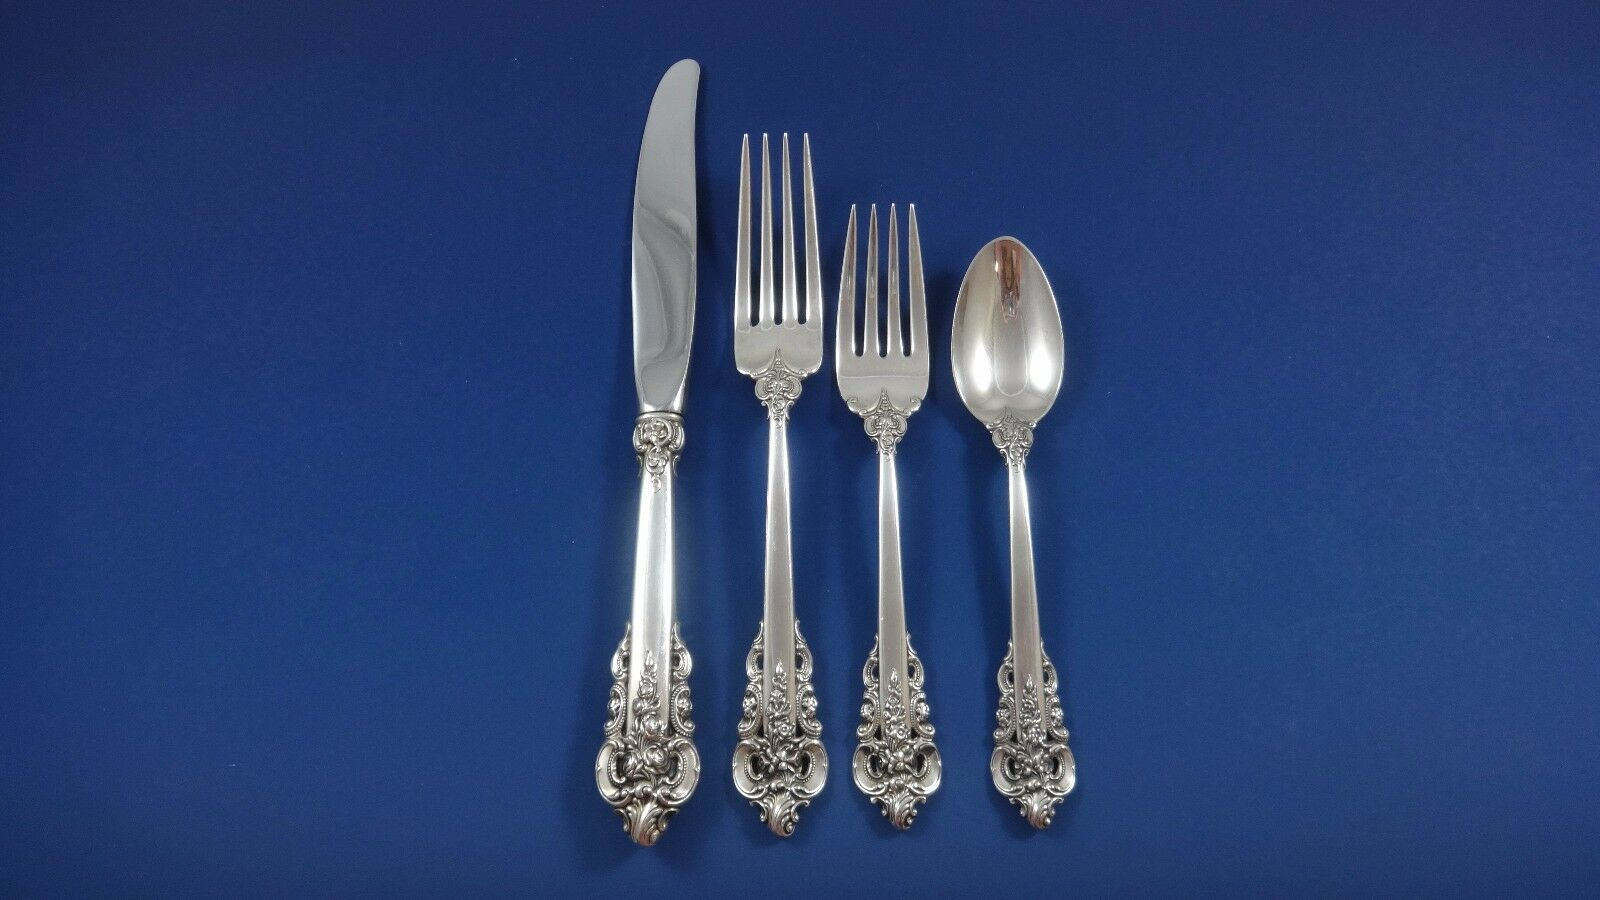 Grande Baroque by Wallace Sterling Silver Flatware Set For 8 Service 58 Pieces